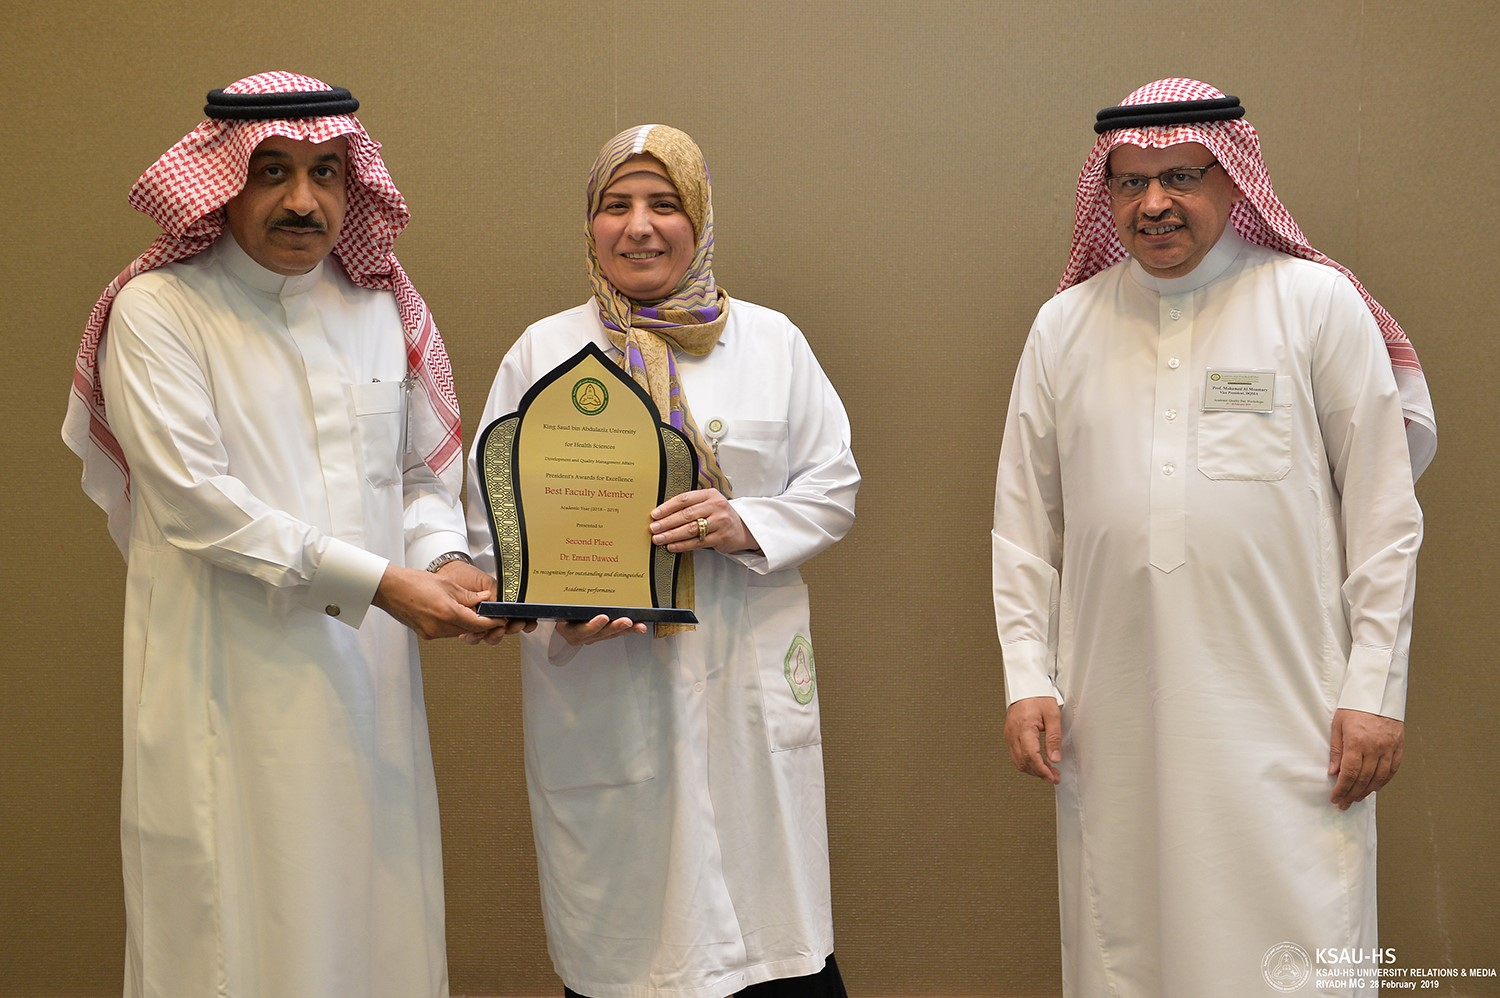 Excellence Award to Dr. Eman Dawood